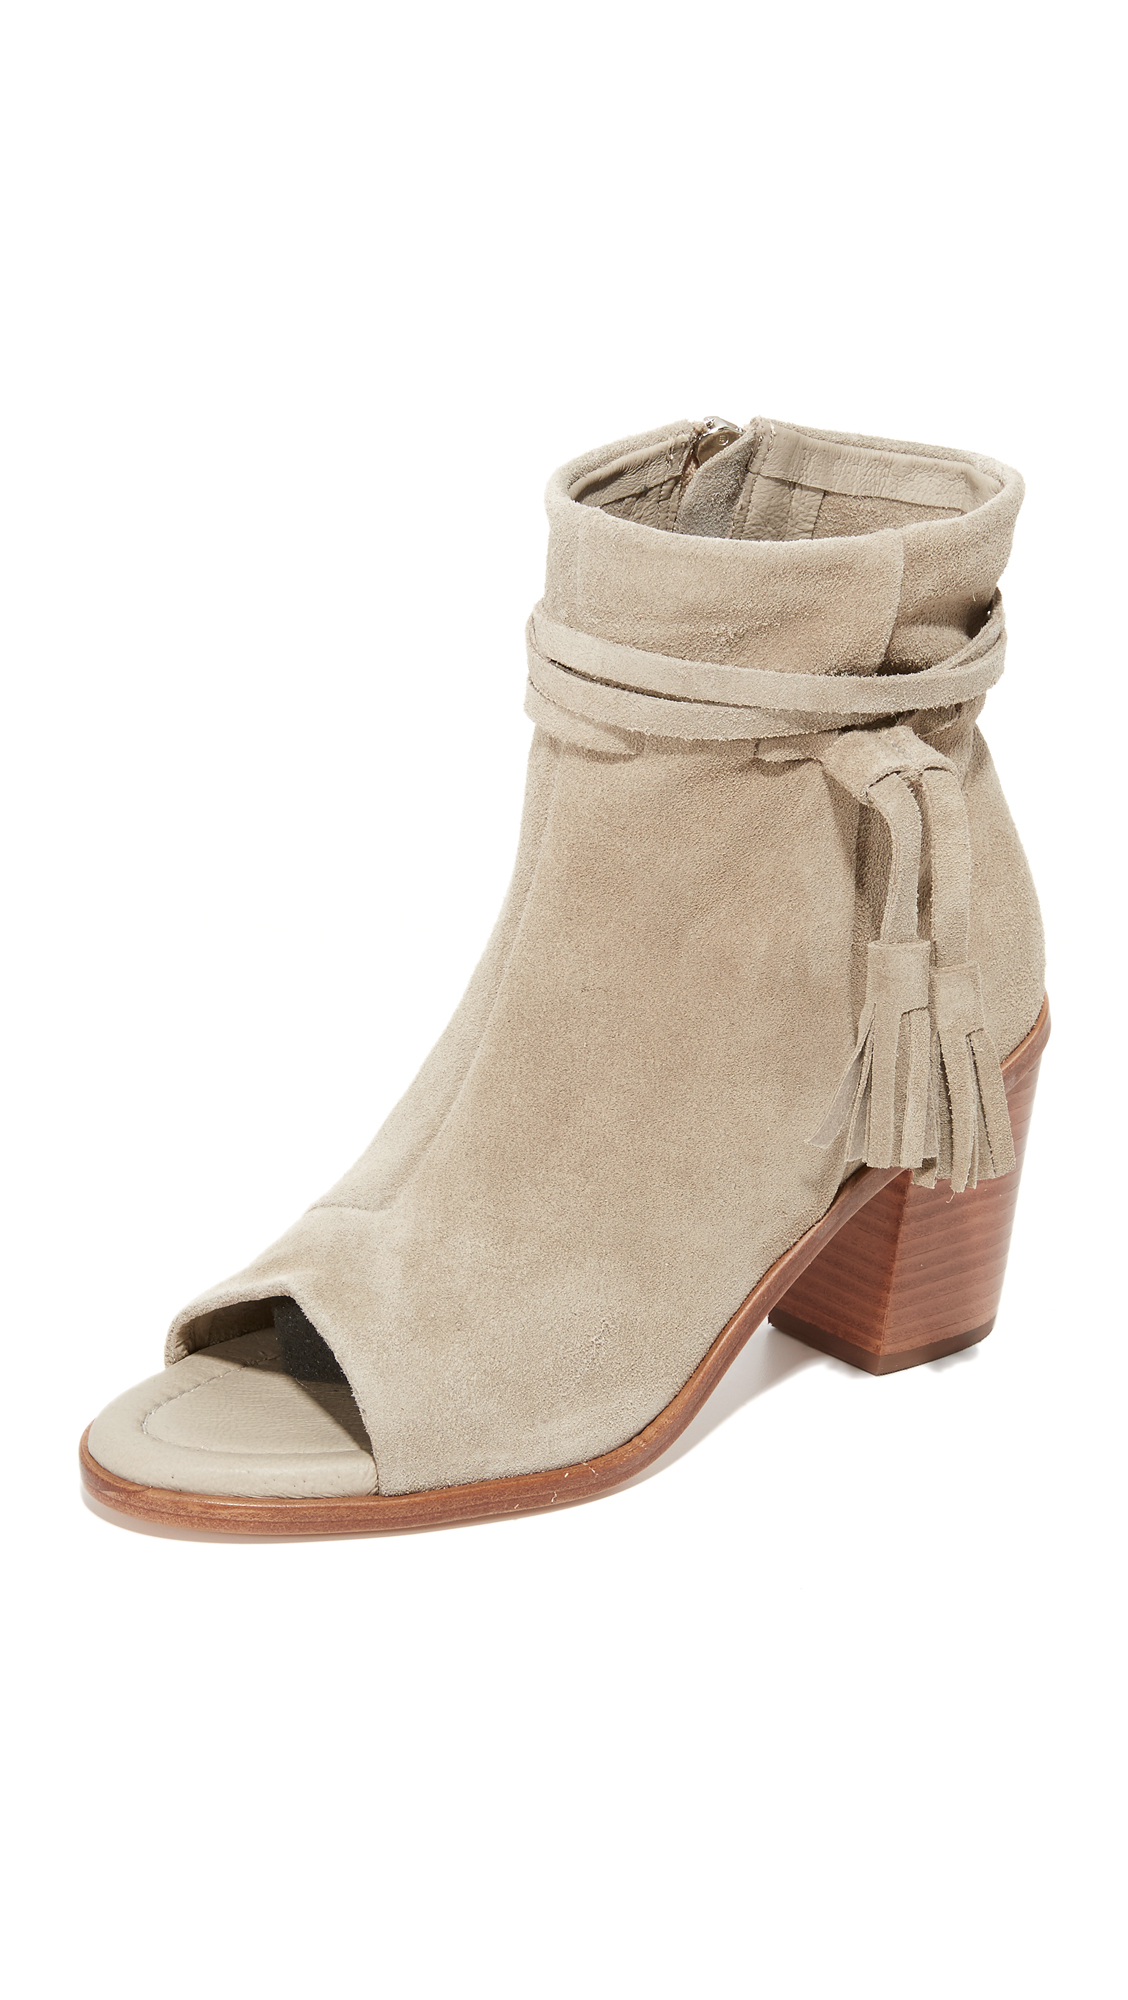 Matt Bernson Billie Tassel Open Toe Booties - Taupe